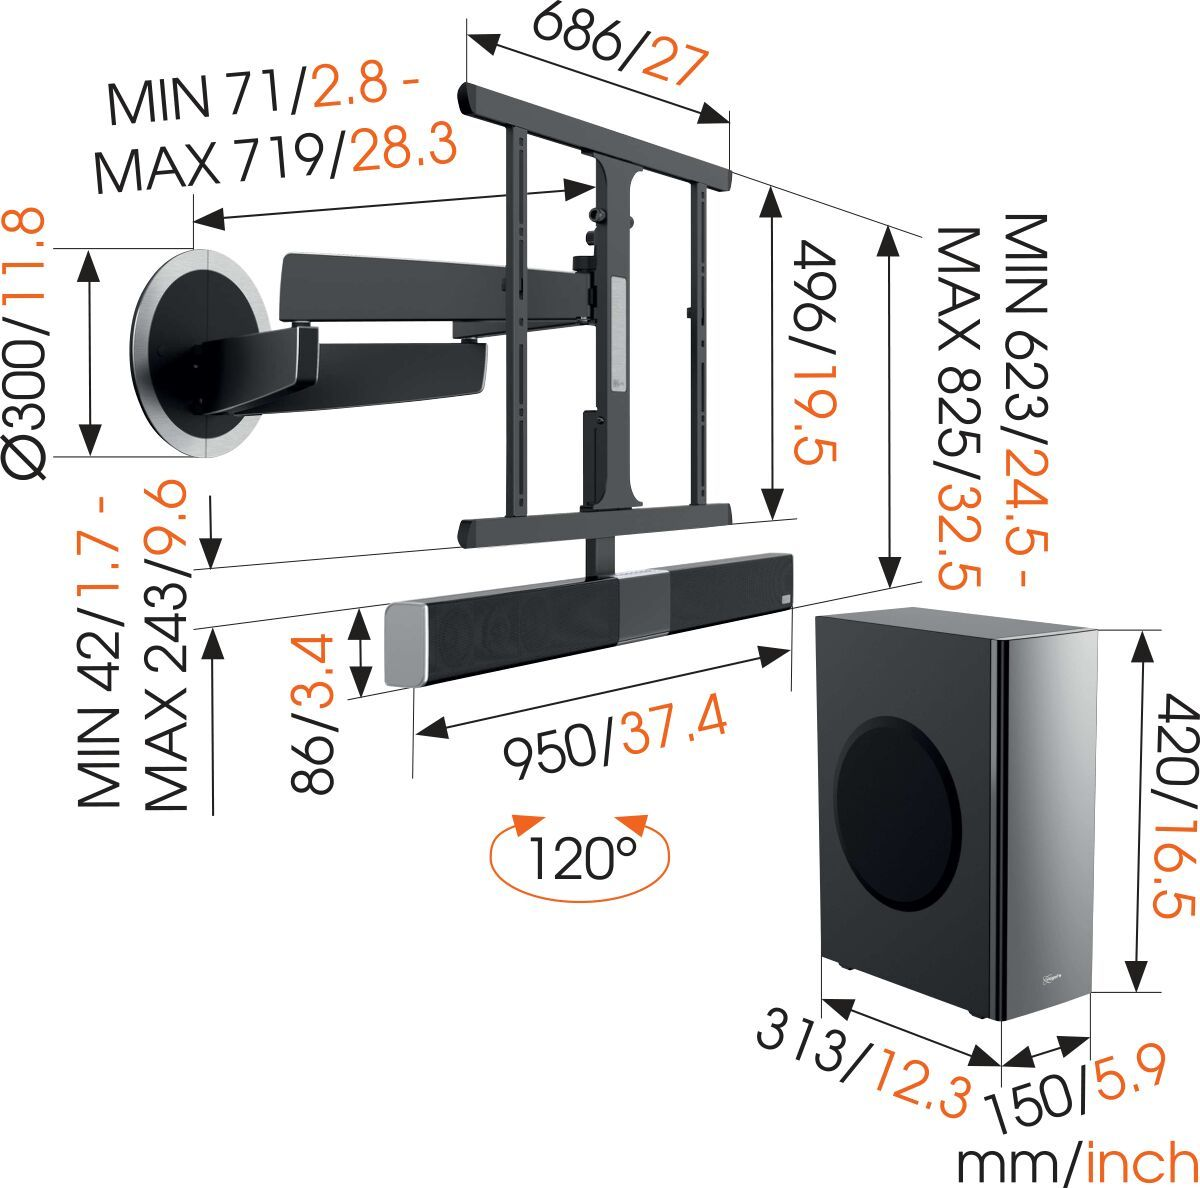 Vogel's MotionSoundMount (NEXT 8375 GB) Full-Motion Motorised TV Wall Mount with Integrated Sound 30 Motion (up to 120°) Dimensions